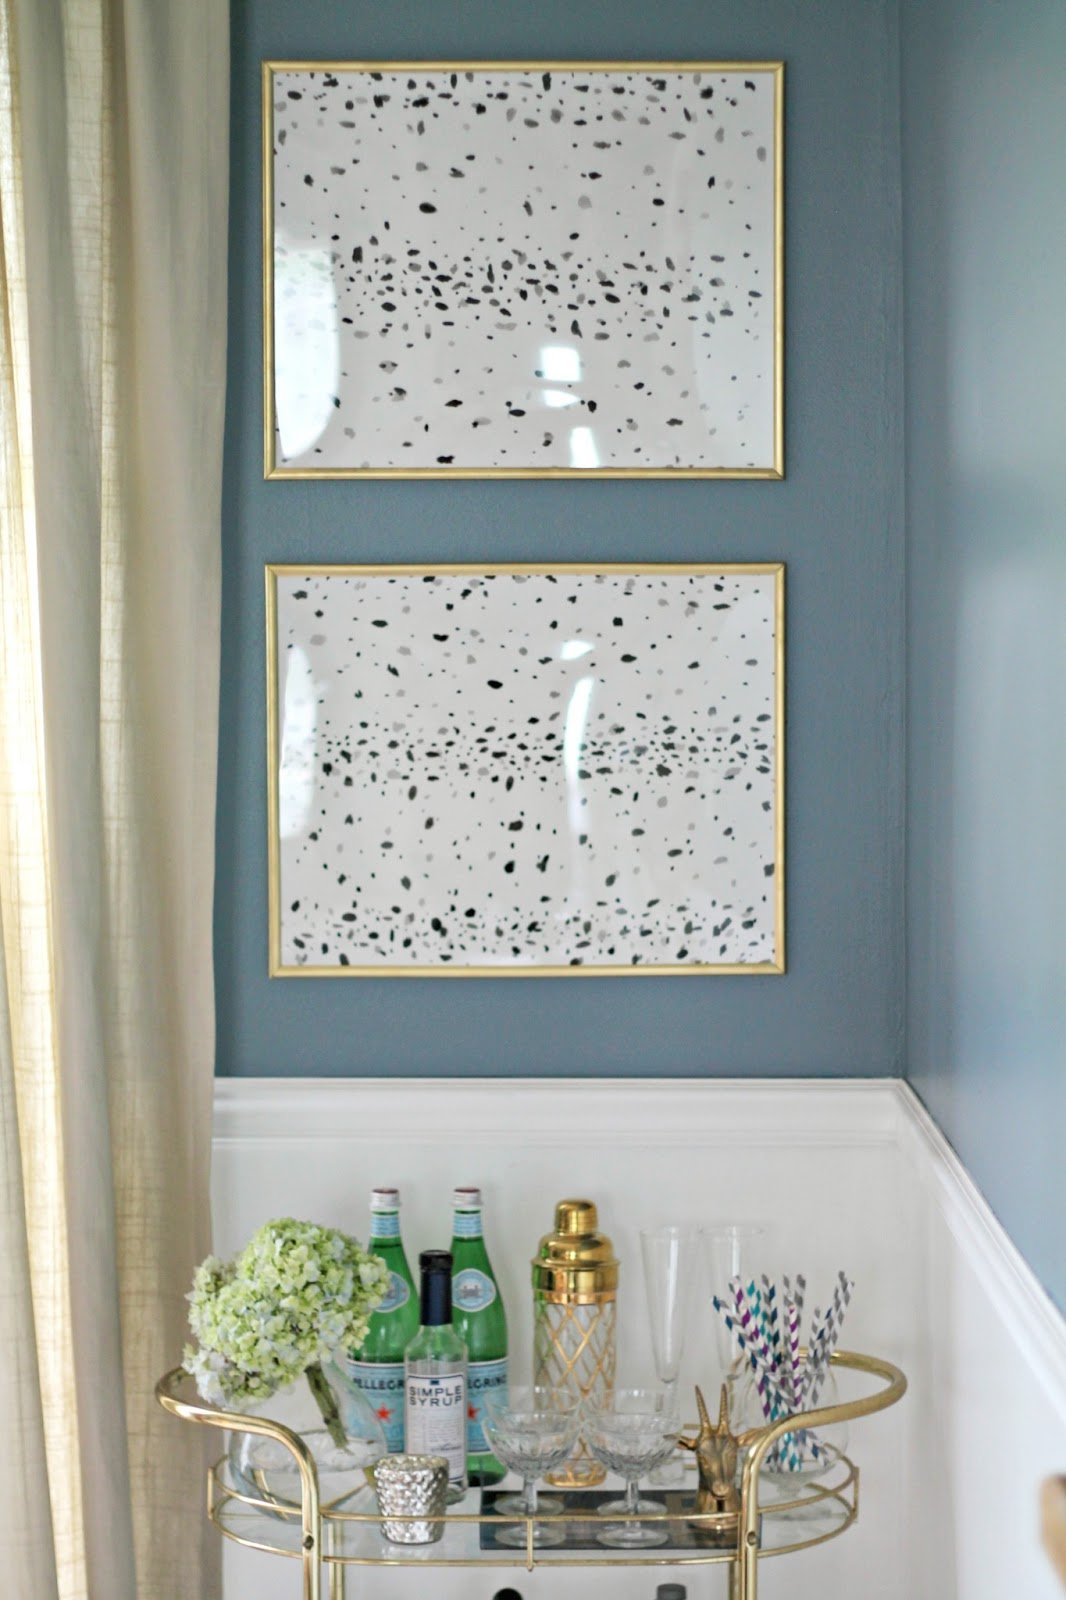 DIY Black and White Spotted Art